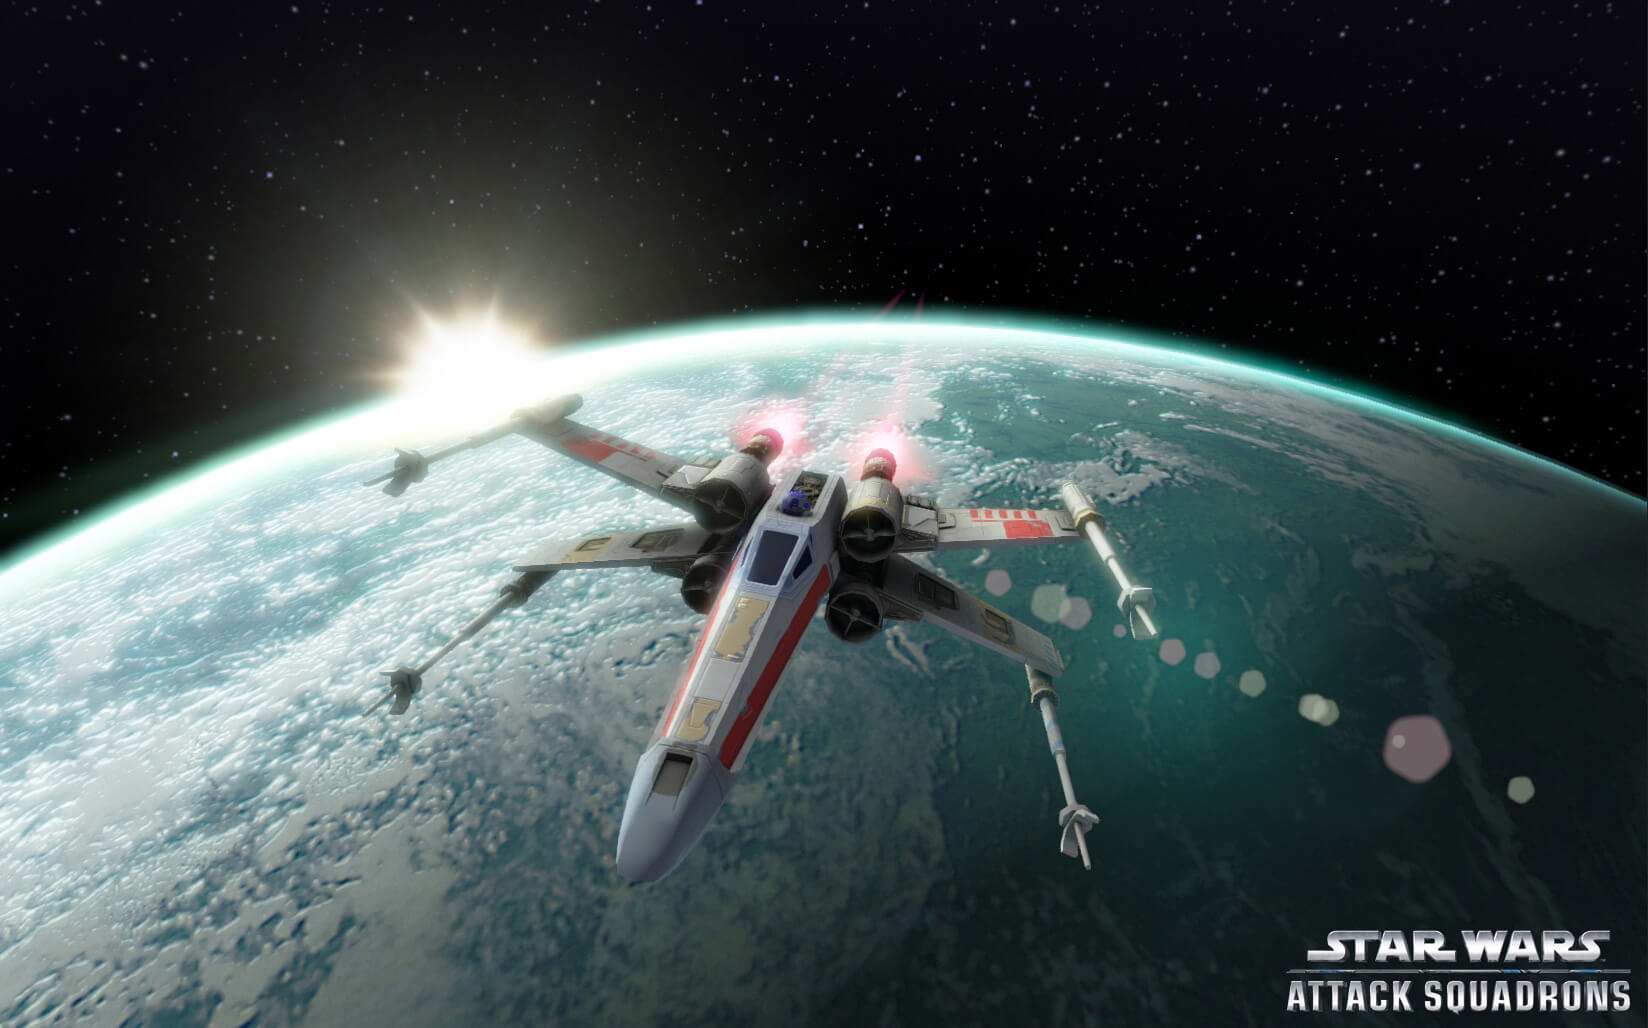 'Star Wars: Attack Squadrons' Doesn't Look Very Good